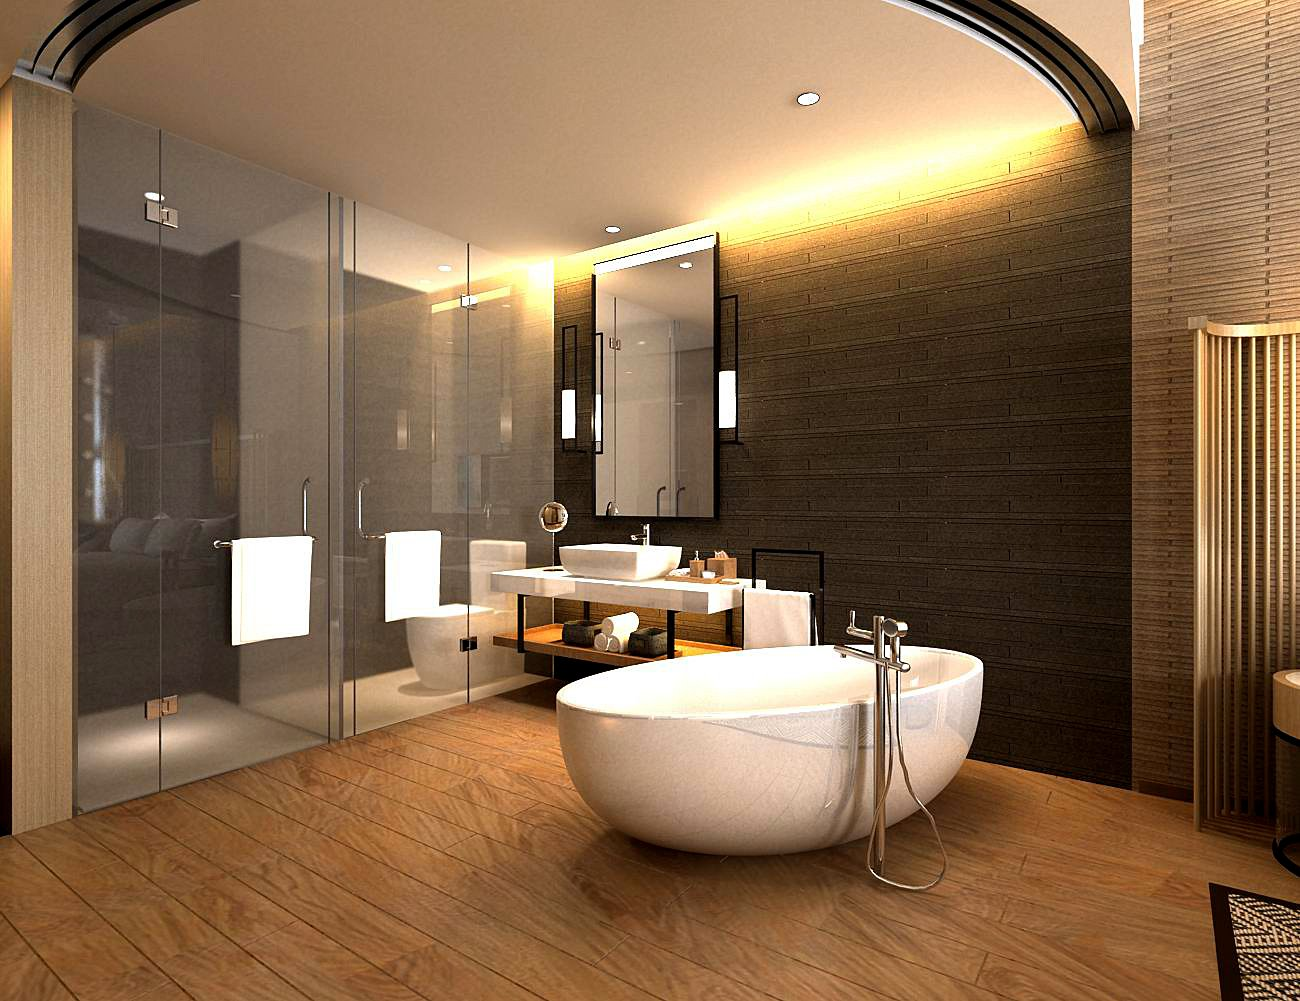 Bathroom Design Complete Model 95 3d Model In Bathroom 3dexport